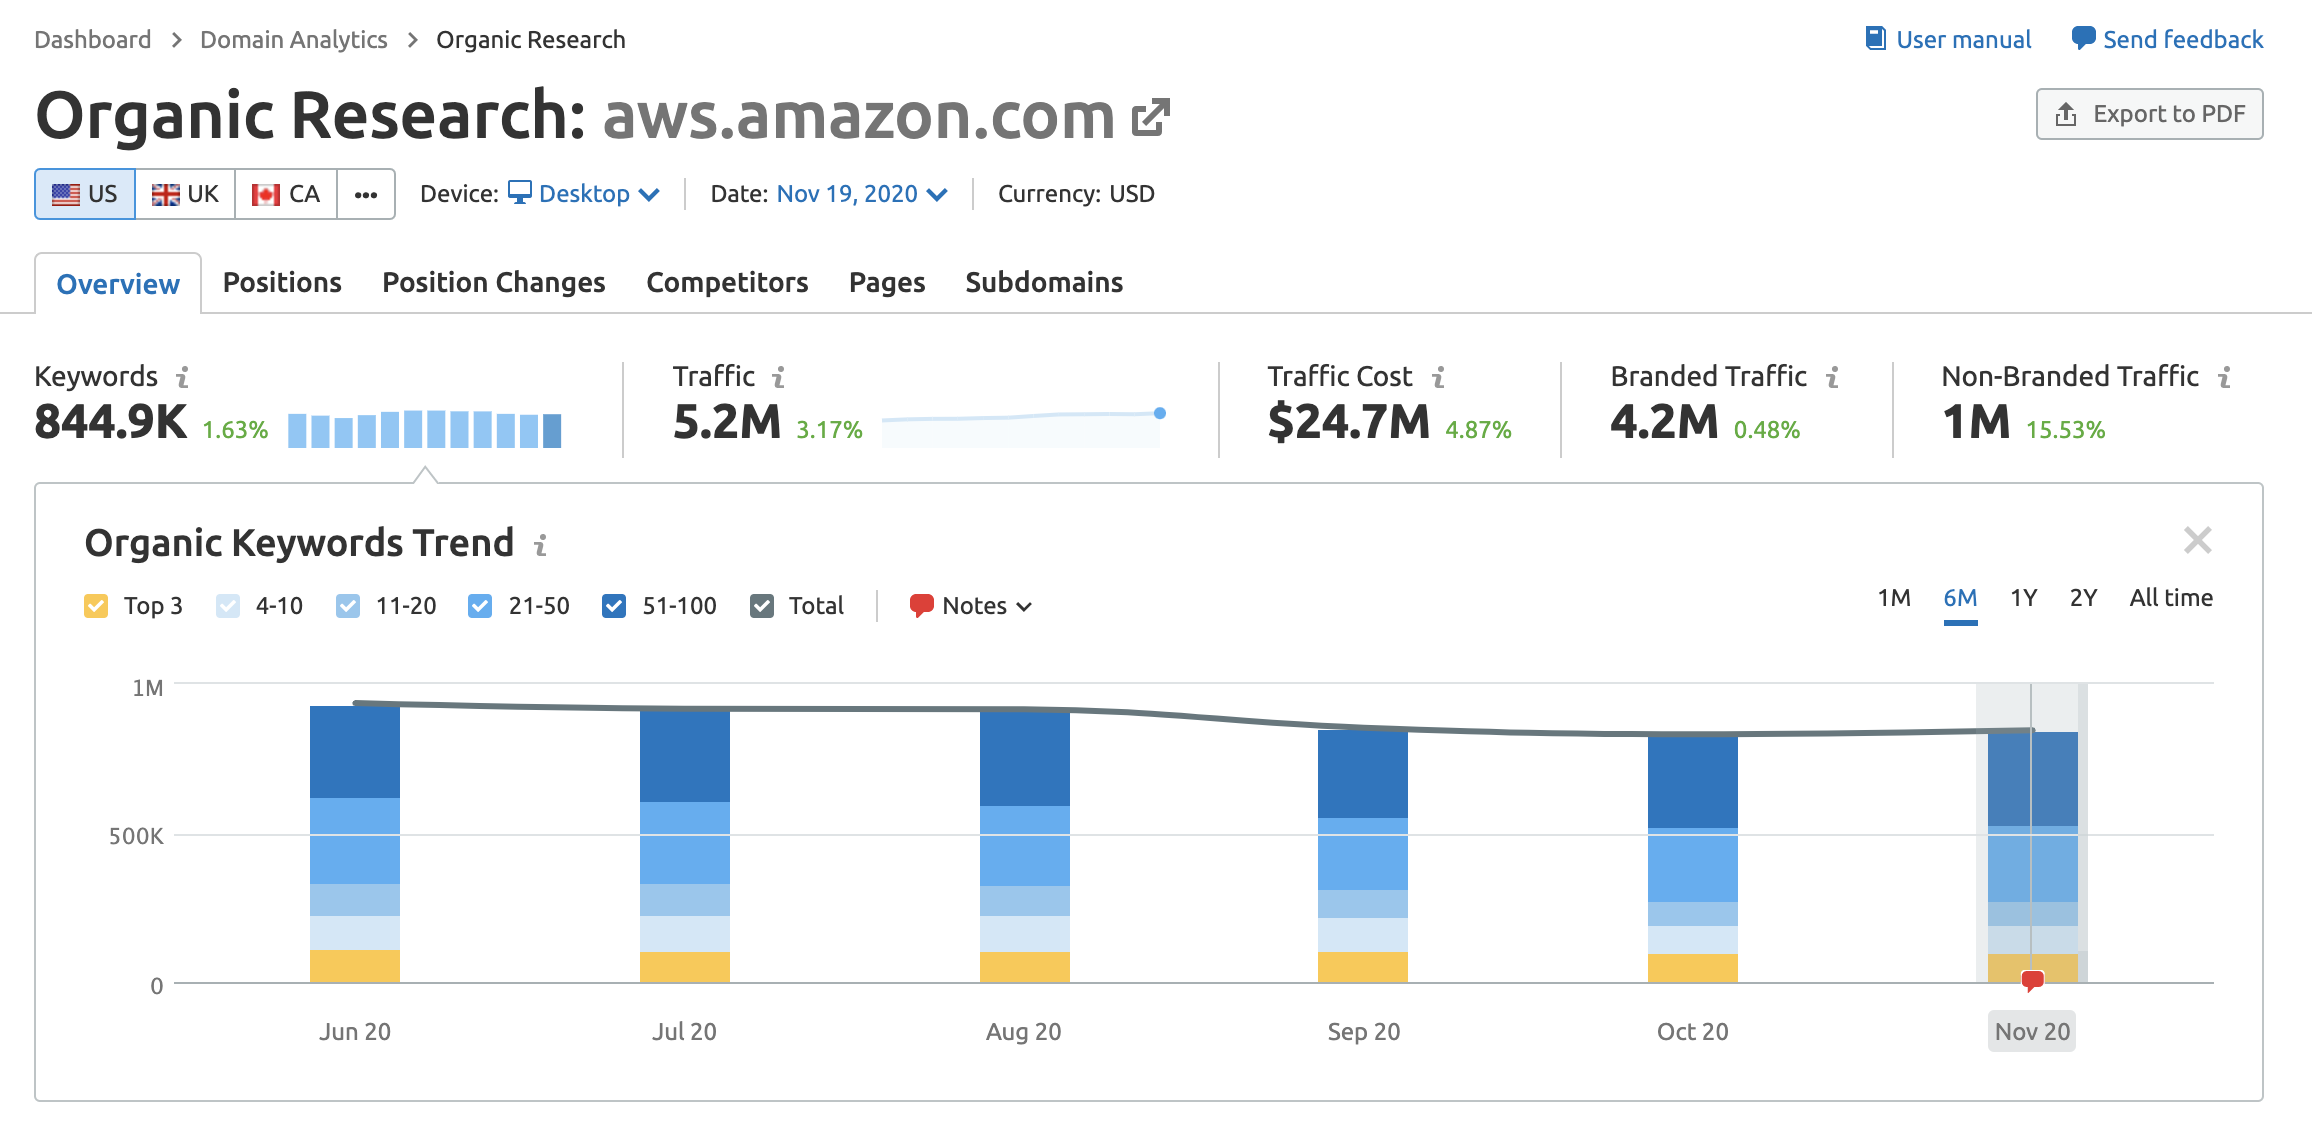 Amazon AWS subdomain data